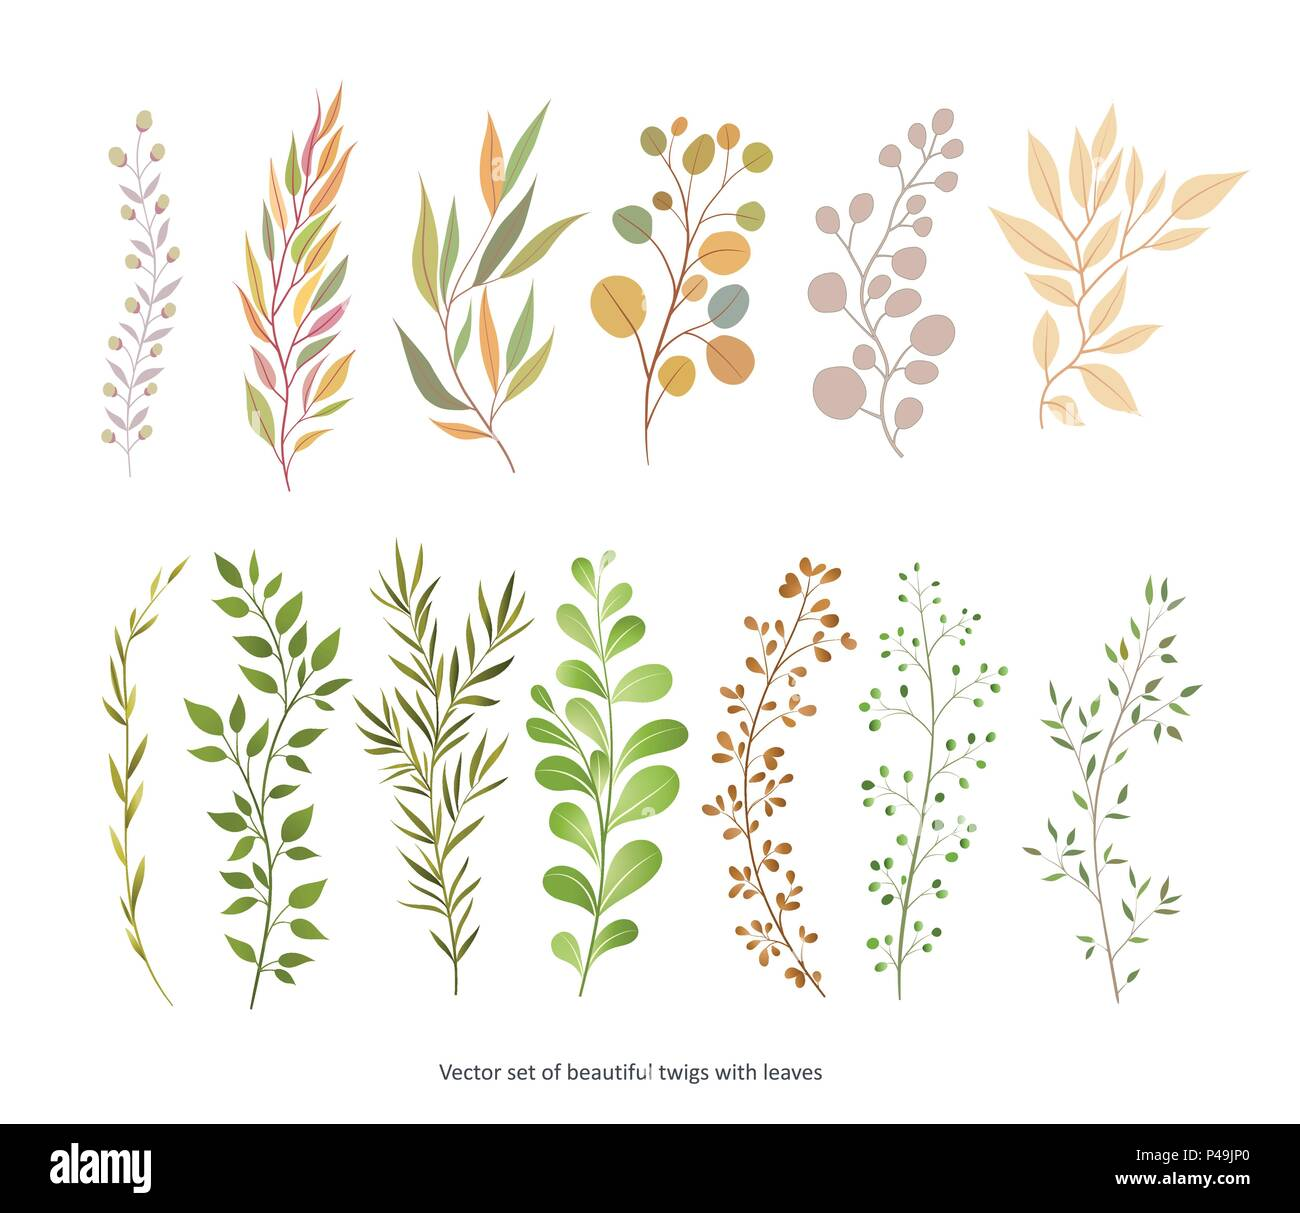 Handdrawn Vector Watercolour style, nature illustration. Set of  leaves and branches, Imitation of watercolor, isolated on white.   - Stock Vector